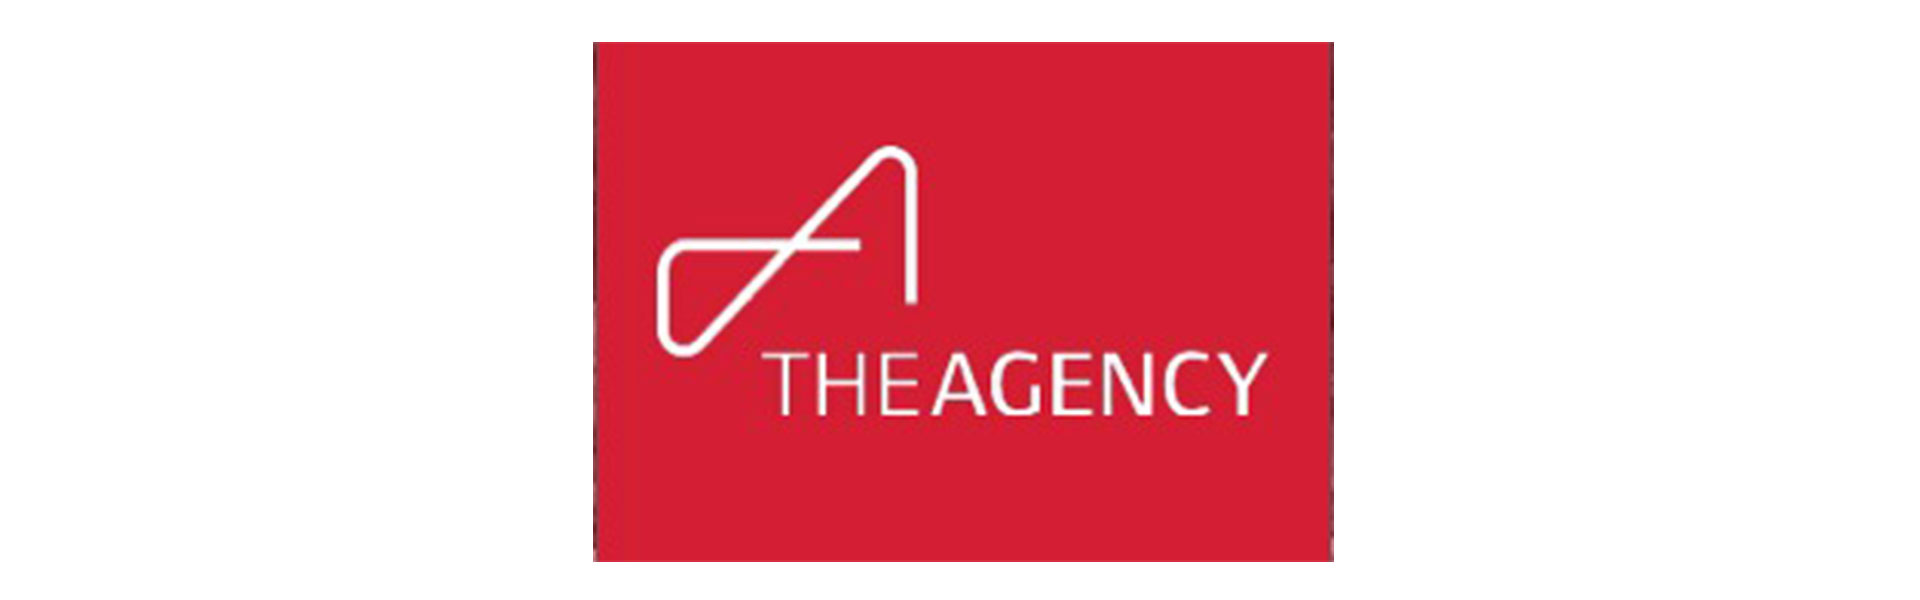 THEAGENCYRE